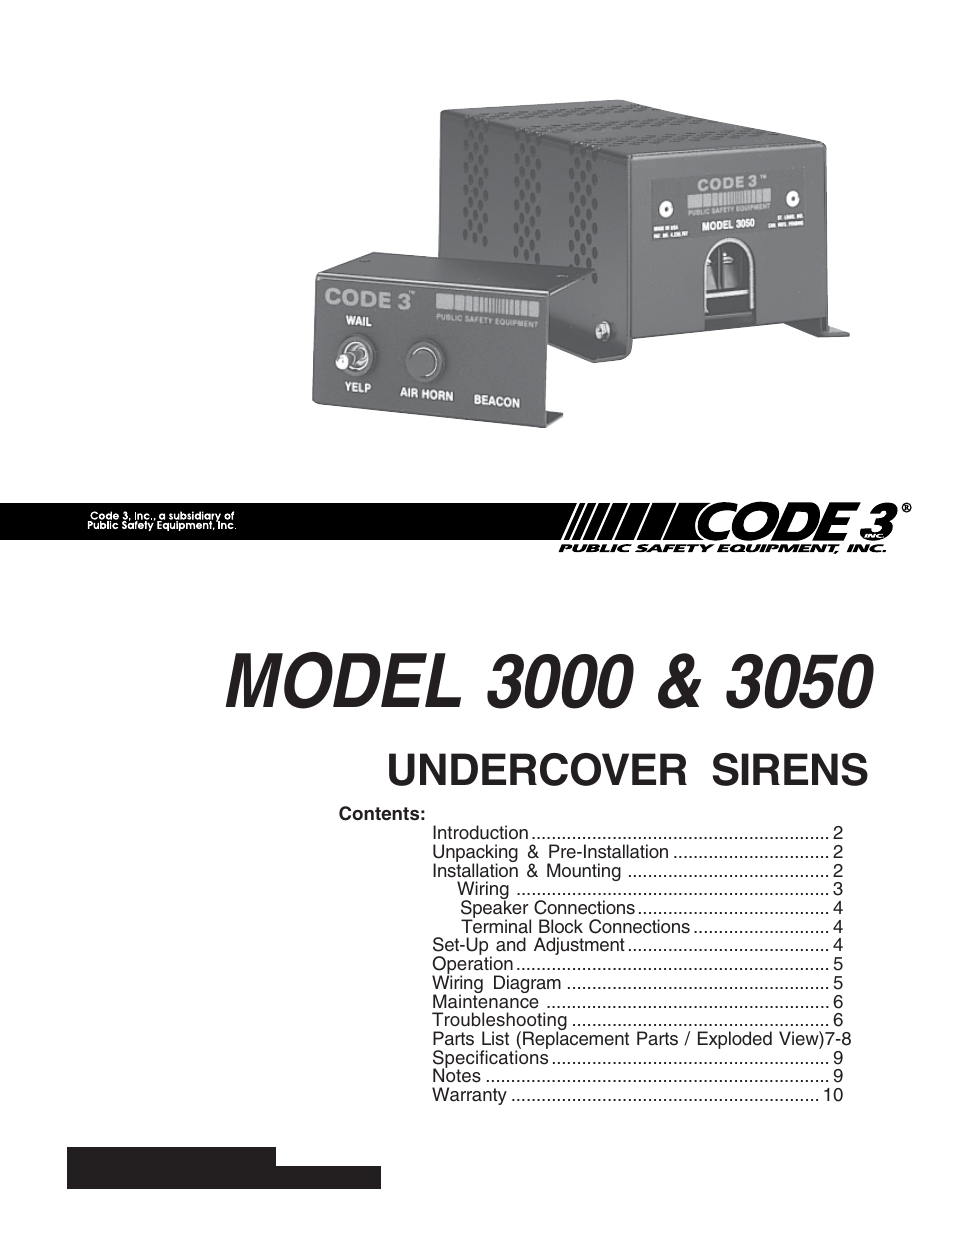 code 3 undercover siren page1 code 3 undercover siren user manual 10 pages code 3 model 3050 wiring diagram at reclaimingppi.co